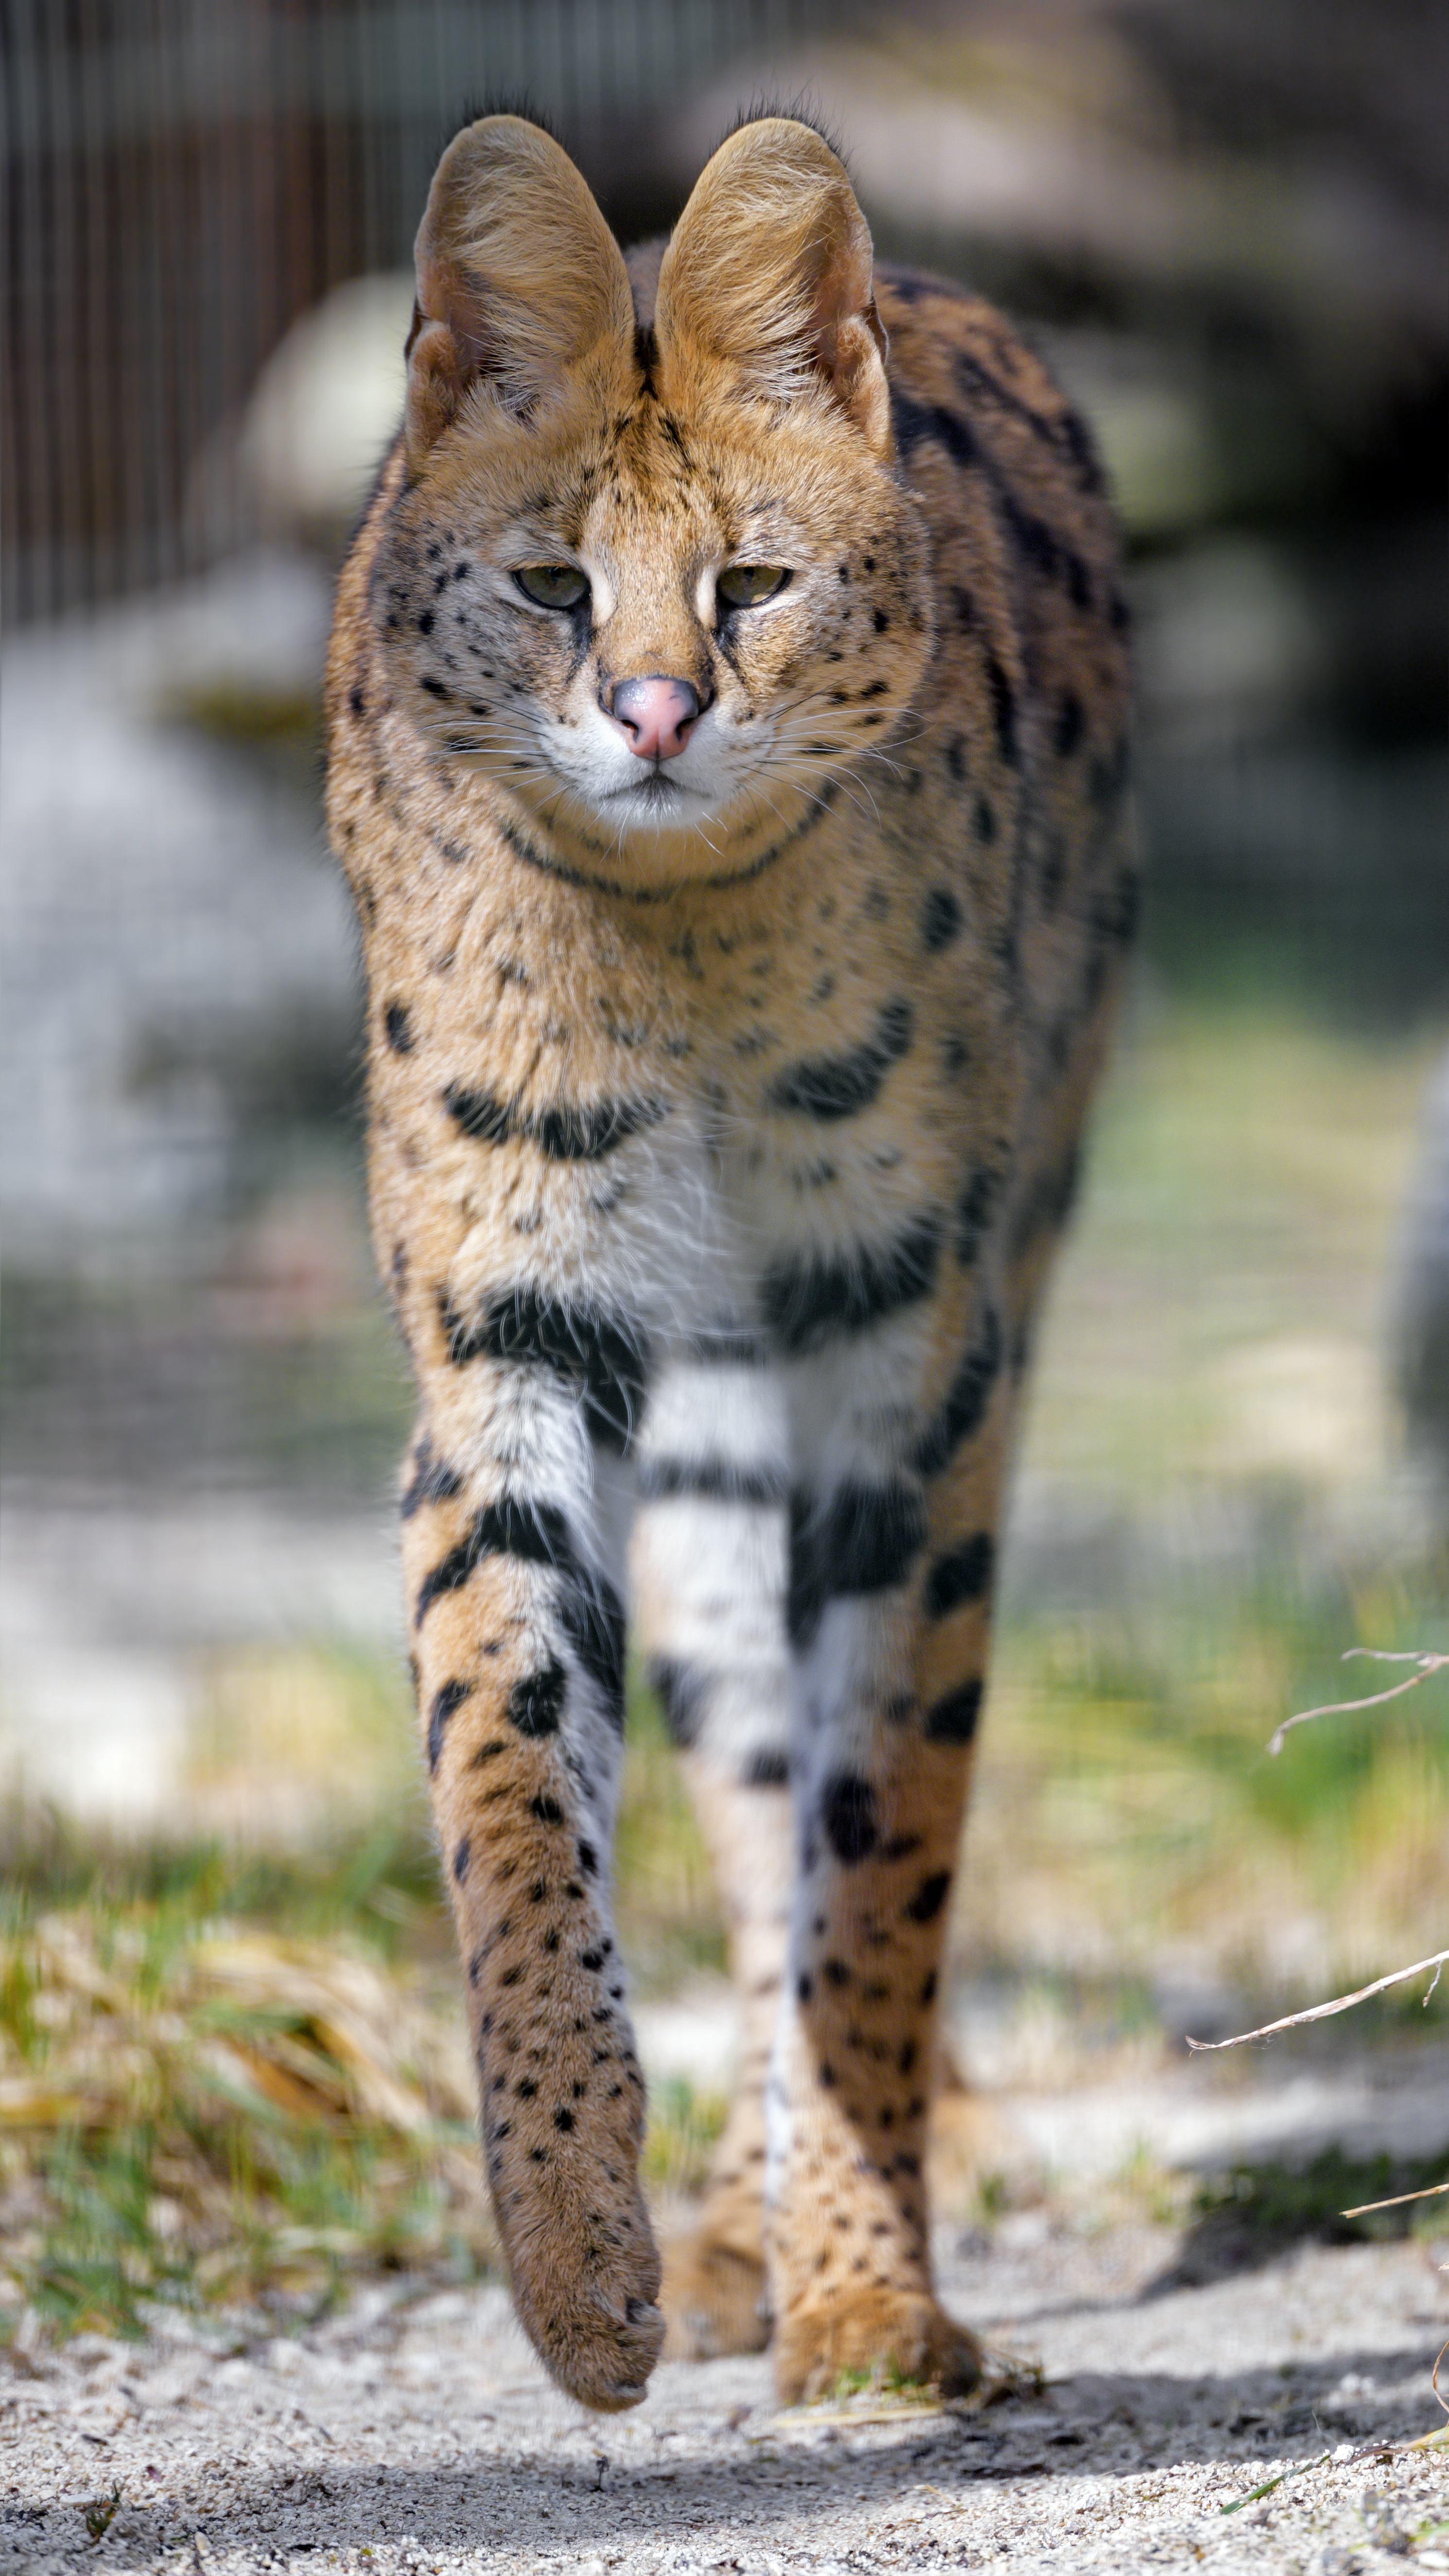 76603 download wallpaper Animals, Serval, Predator, Animal, Sight, Opinion, Big Cat screensavers and pictures for free